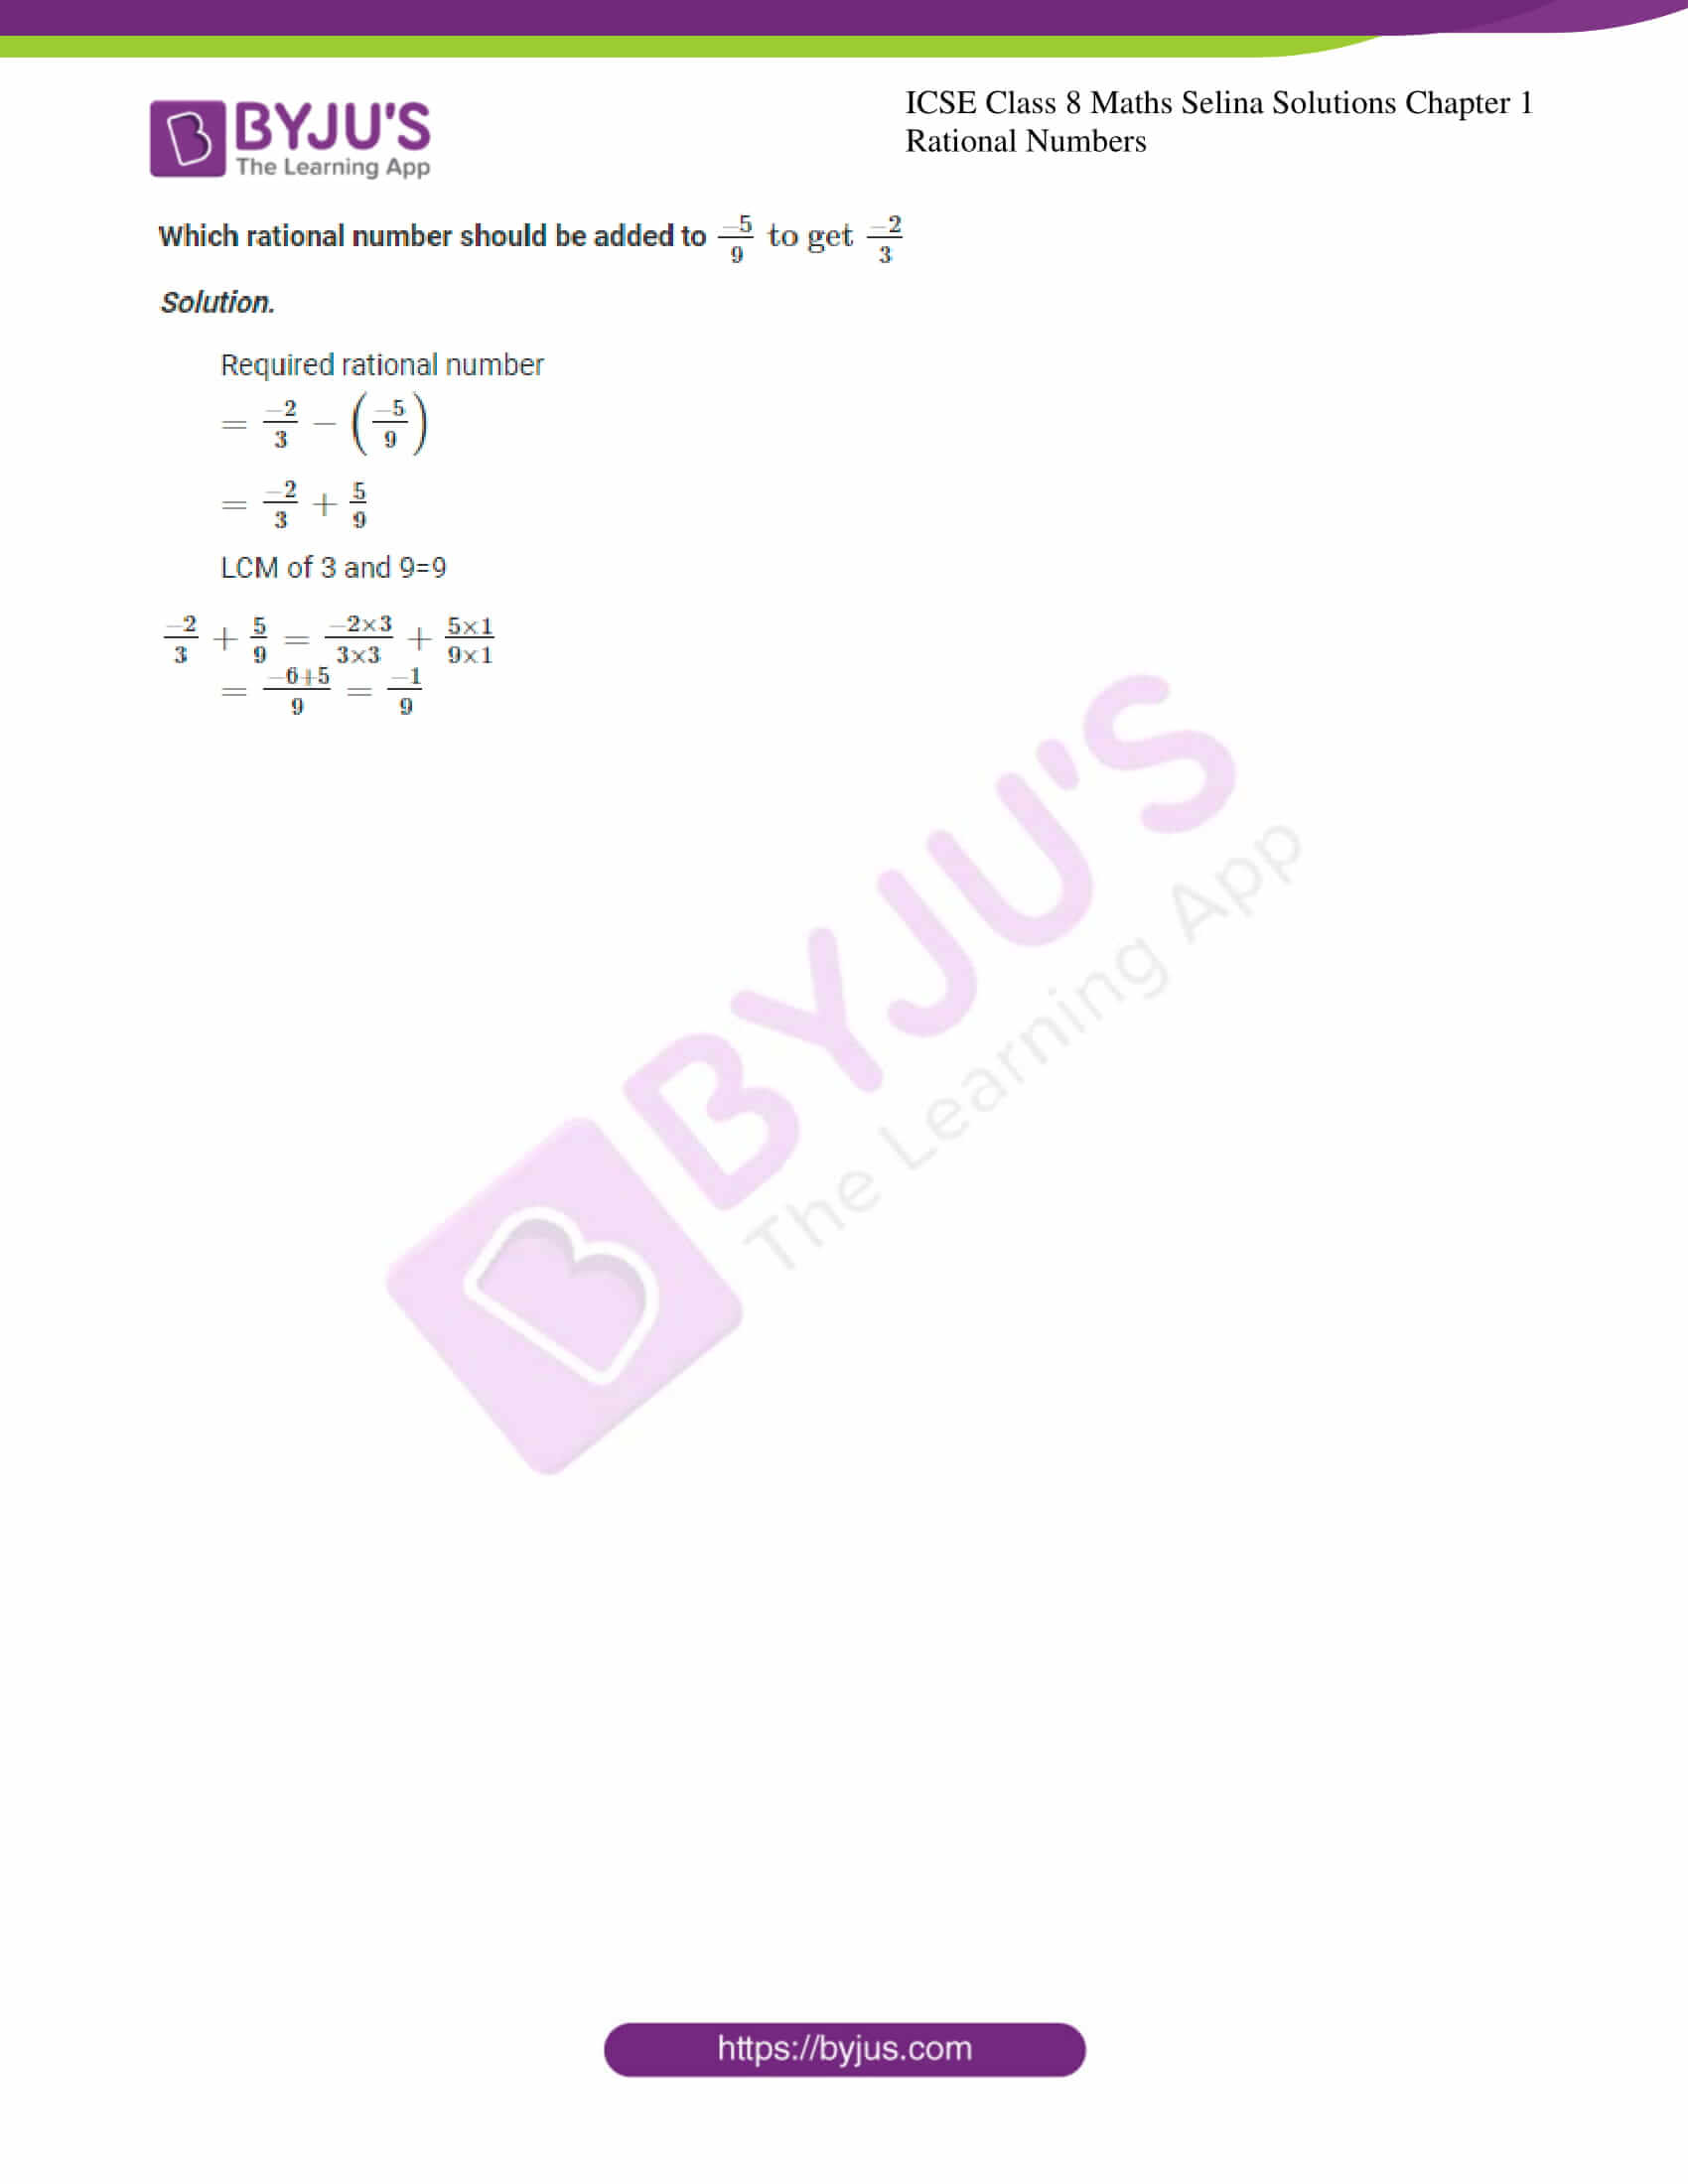 icse april7 class 8 maths selina solutions chapter 1 rational numbers 24